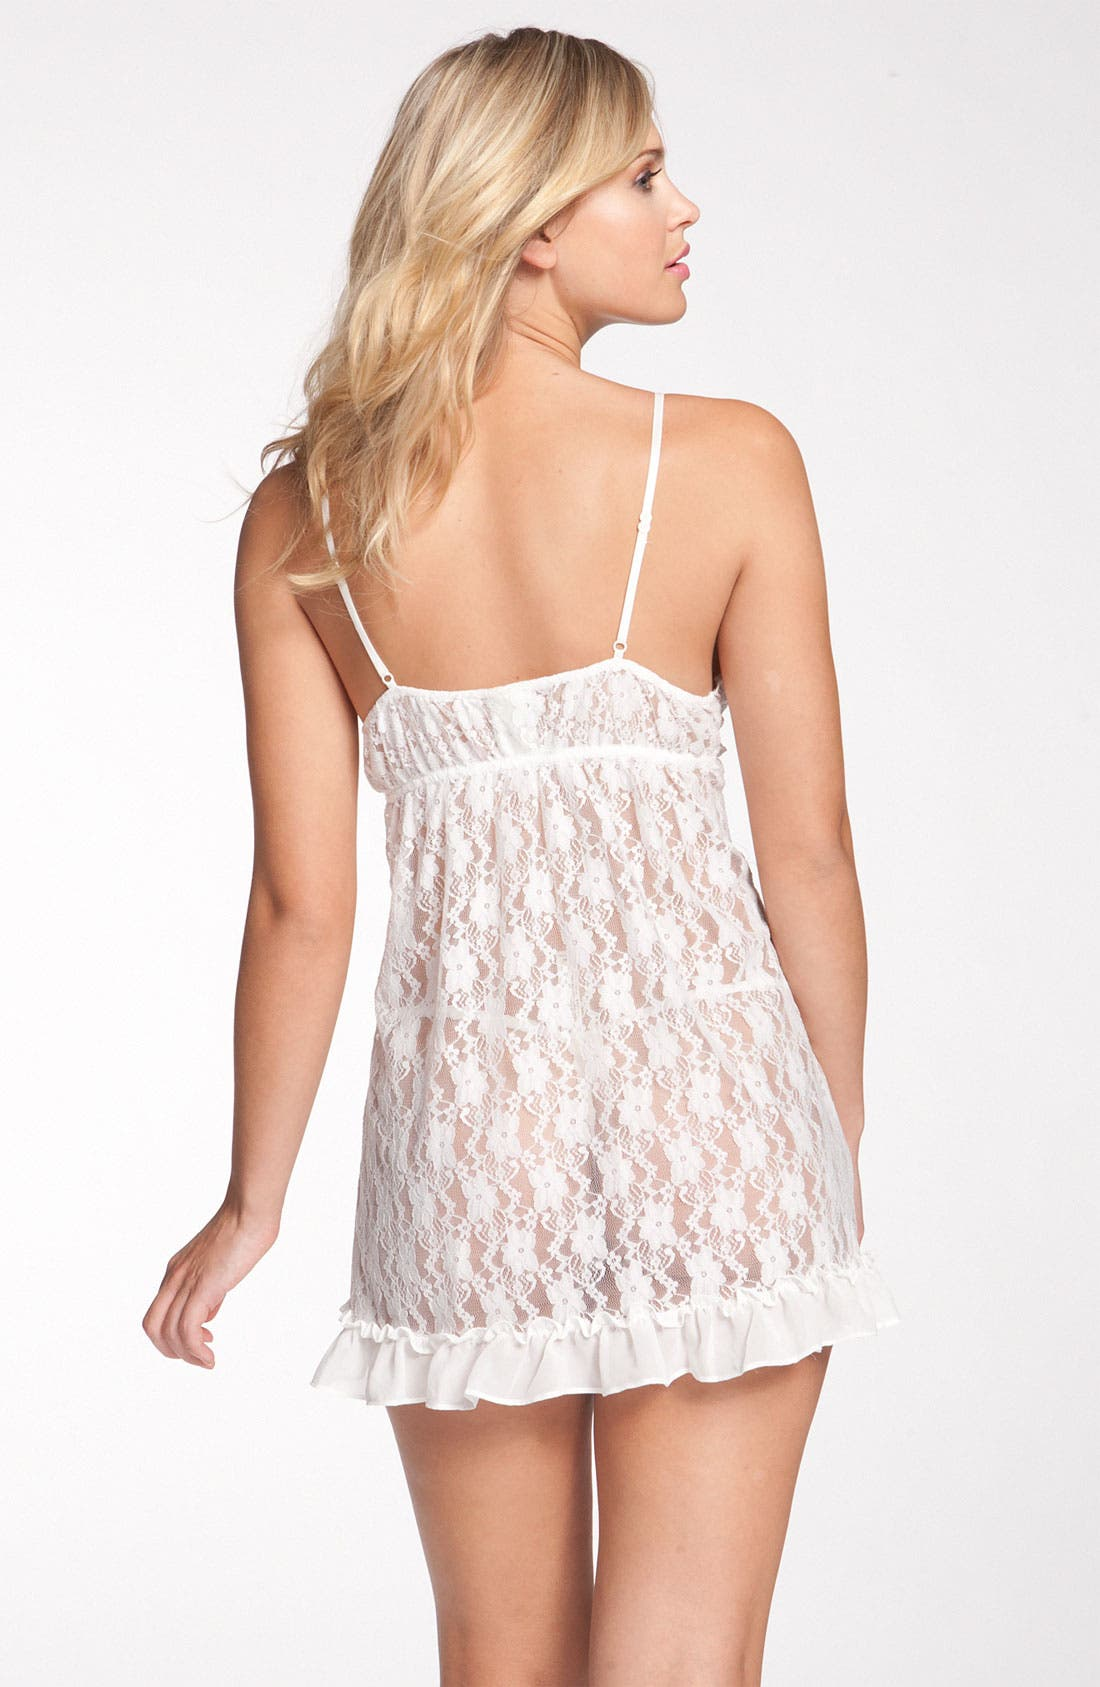 Alternate Image 2  - In Bloom by Jonquil 'Retro' Ruffle Lace Nightie & Thong